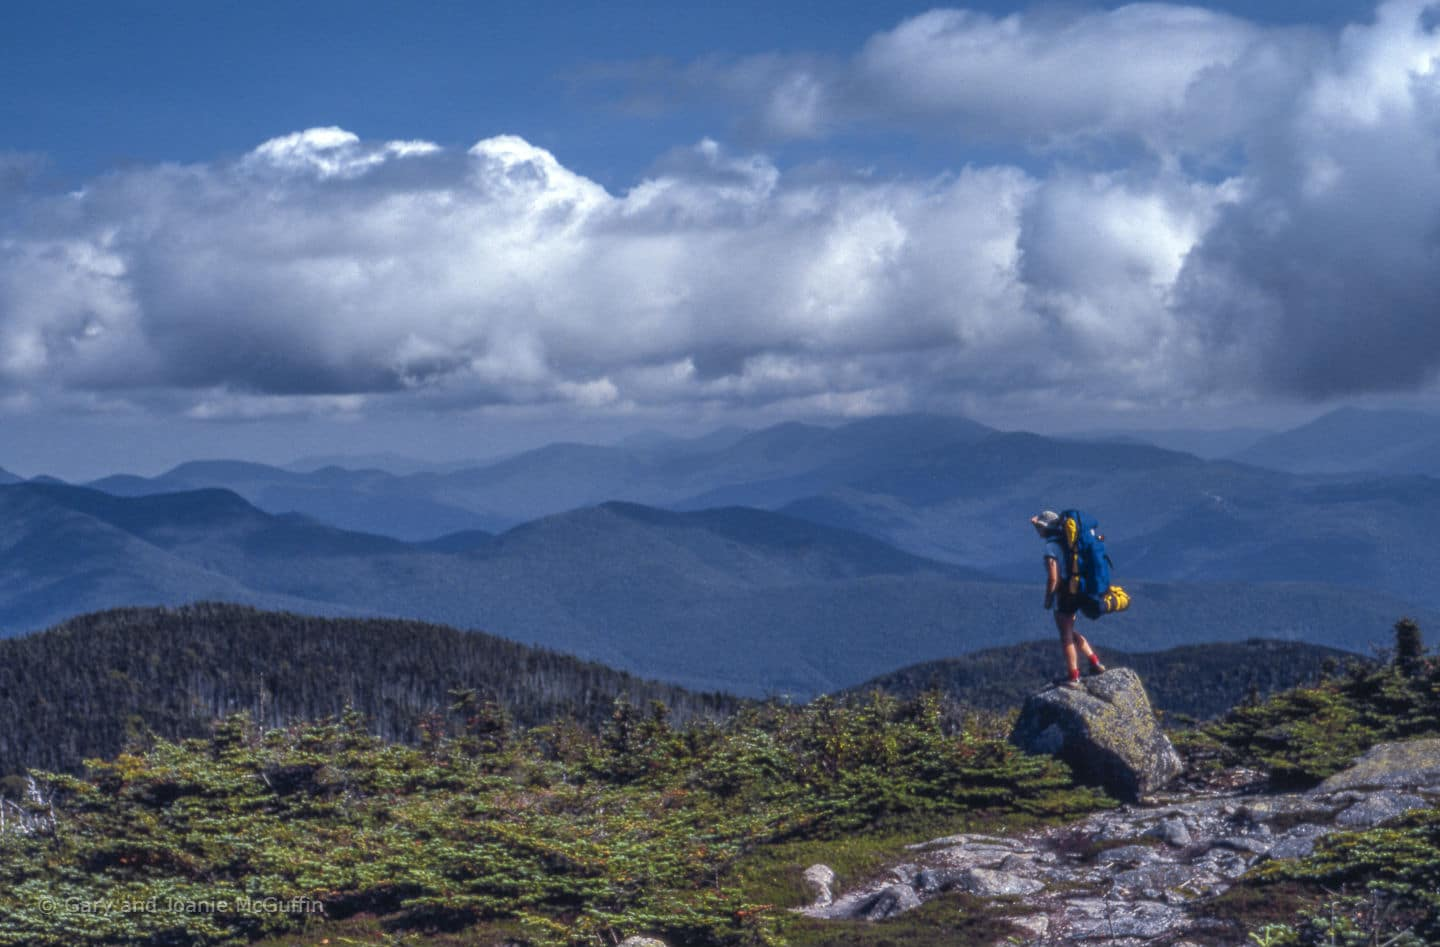 Hiker standing on a rock looking out on the mountains